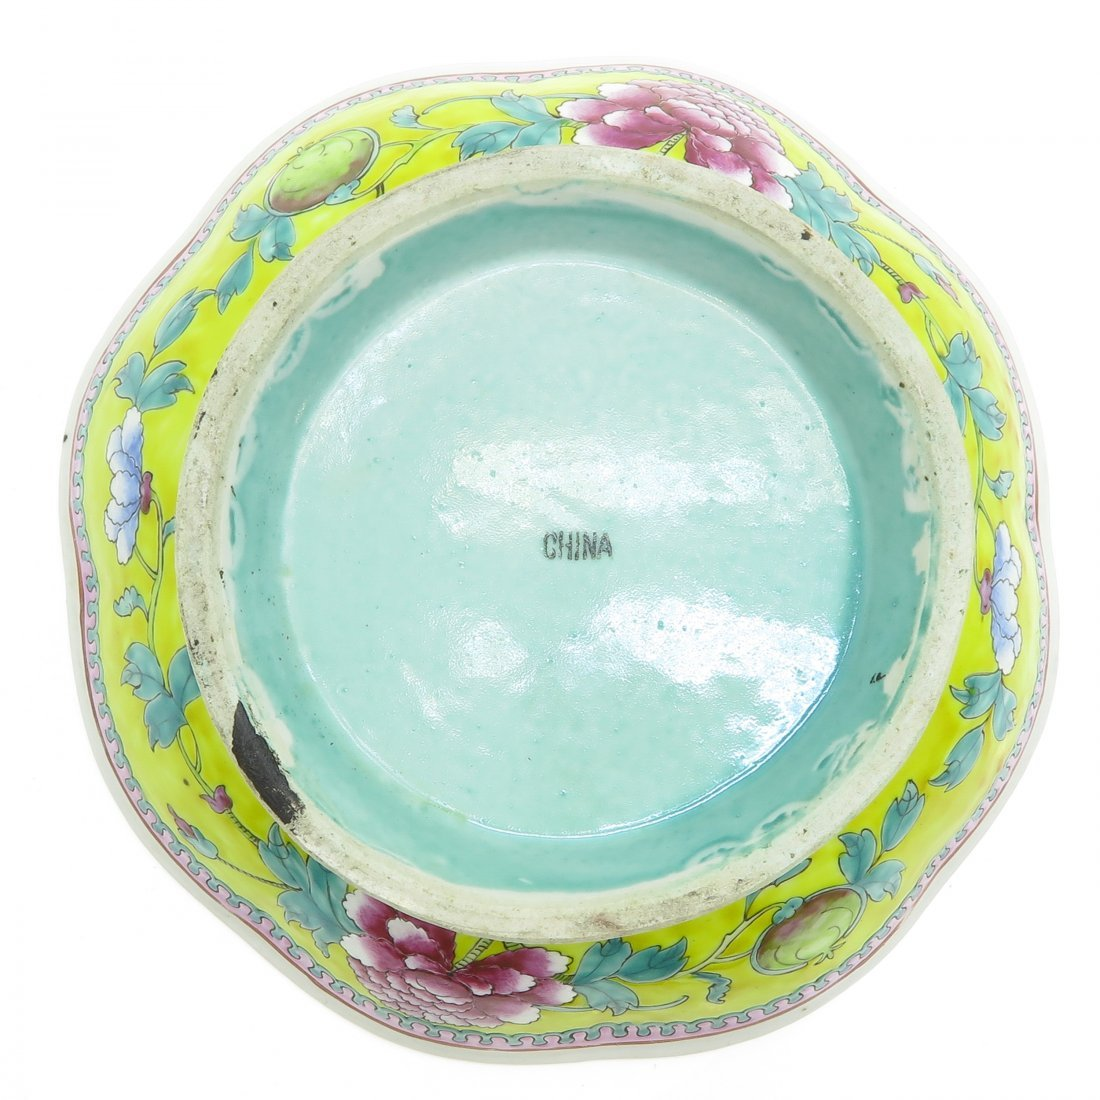 China Porcelain Footed Bowl - 6